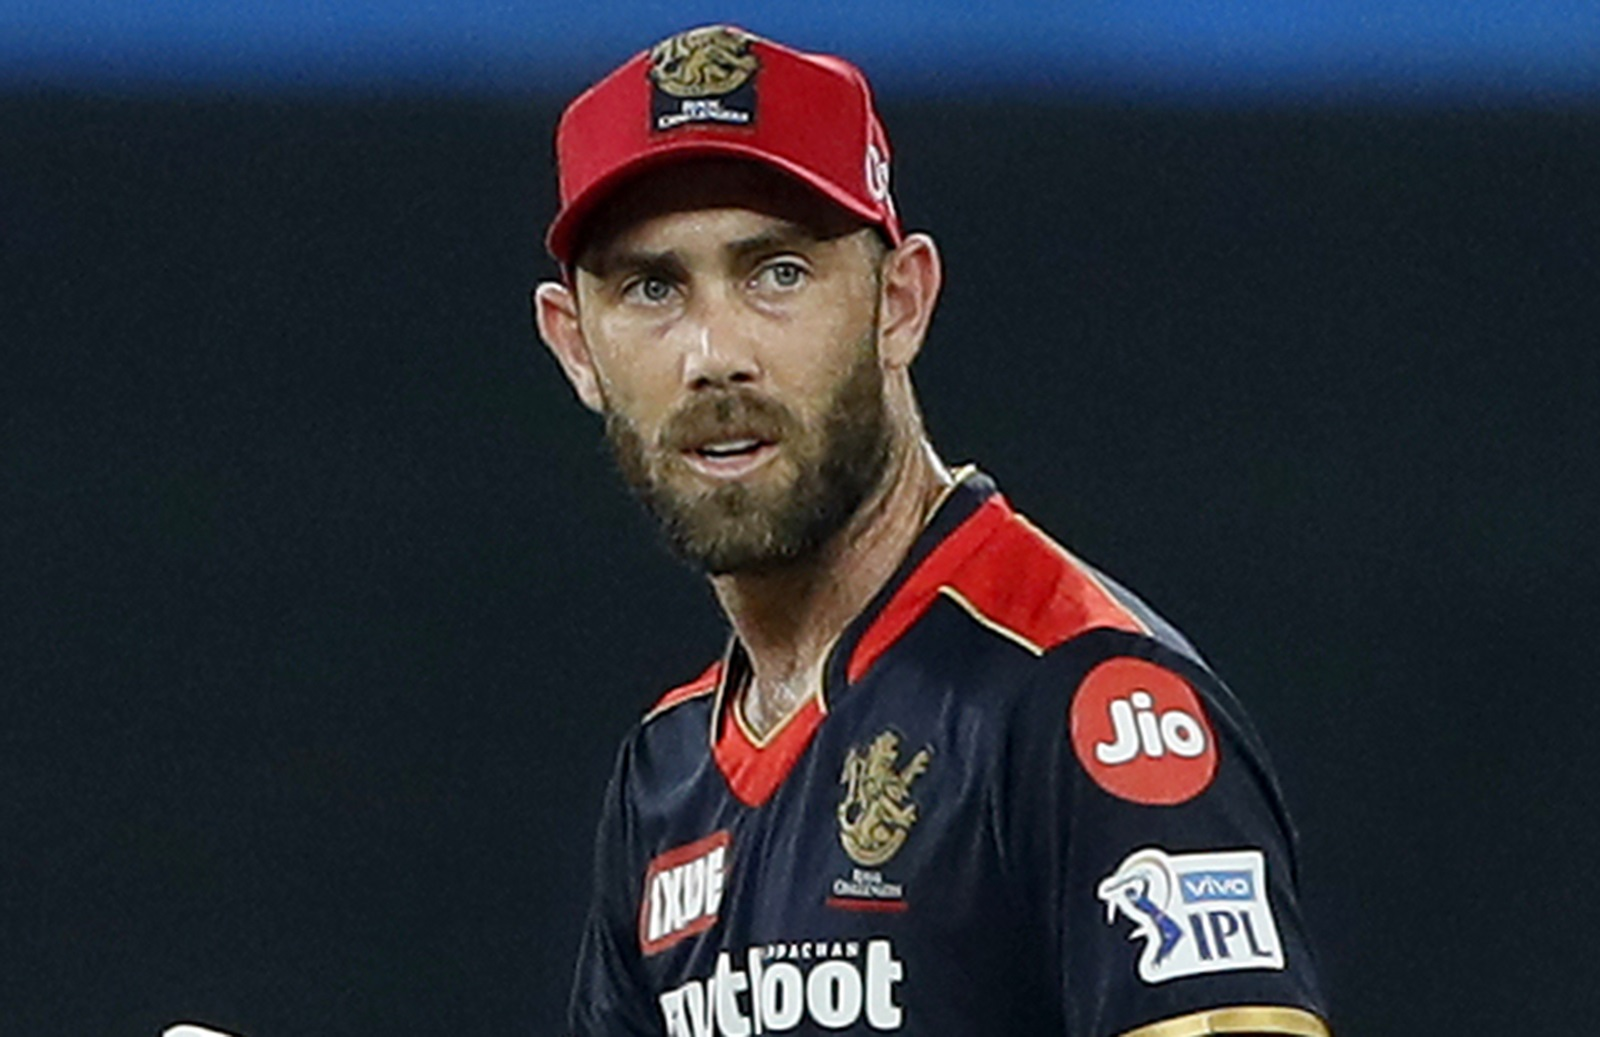 Disgusting': Maxwell's IPL ends on a sour note   cricket.com.au